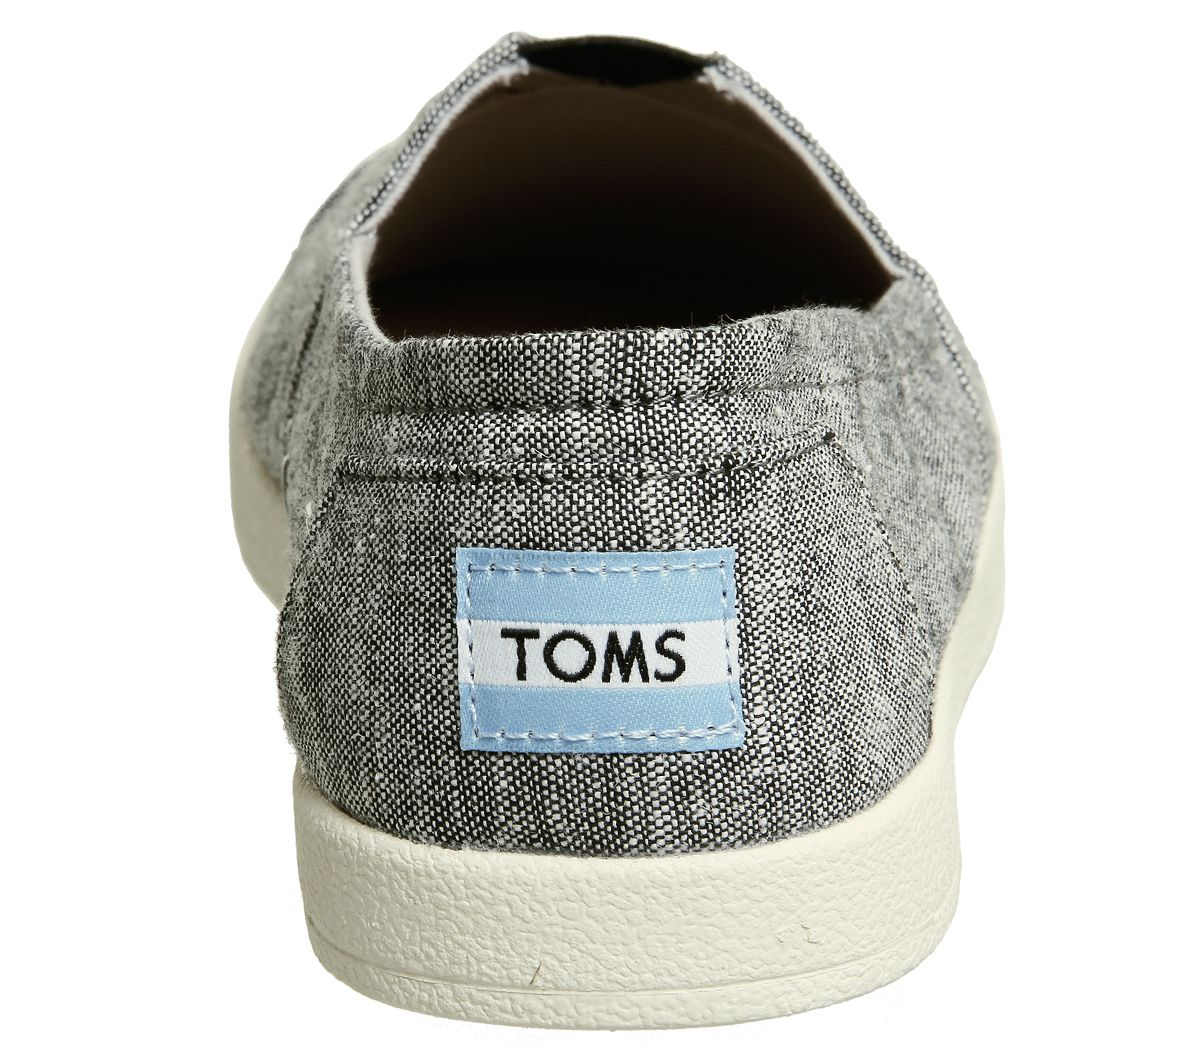 Womens-Toms-Avalon-Sneakers-Black-Slub-Chambray-Flats thumbnail 11